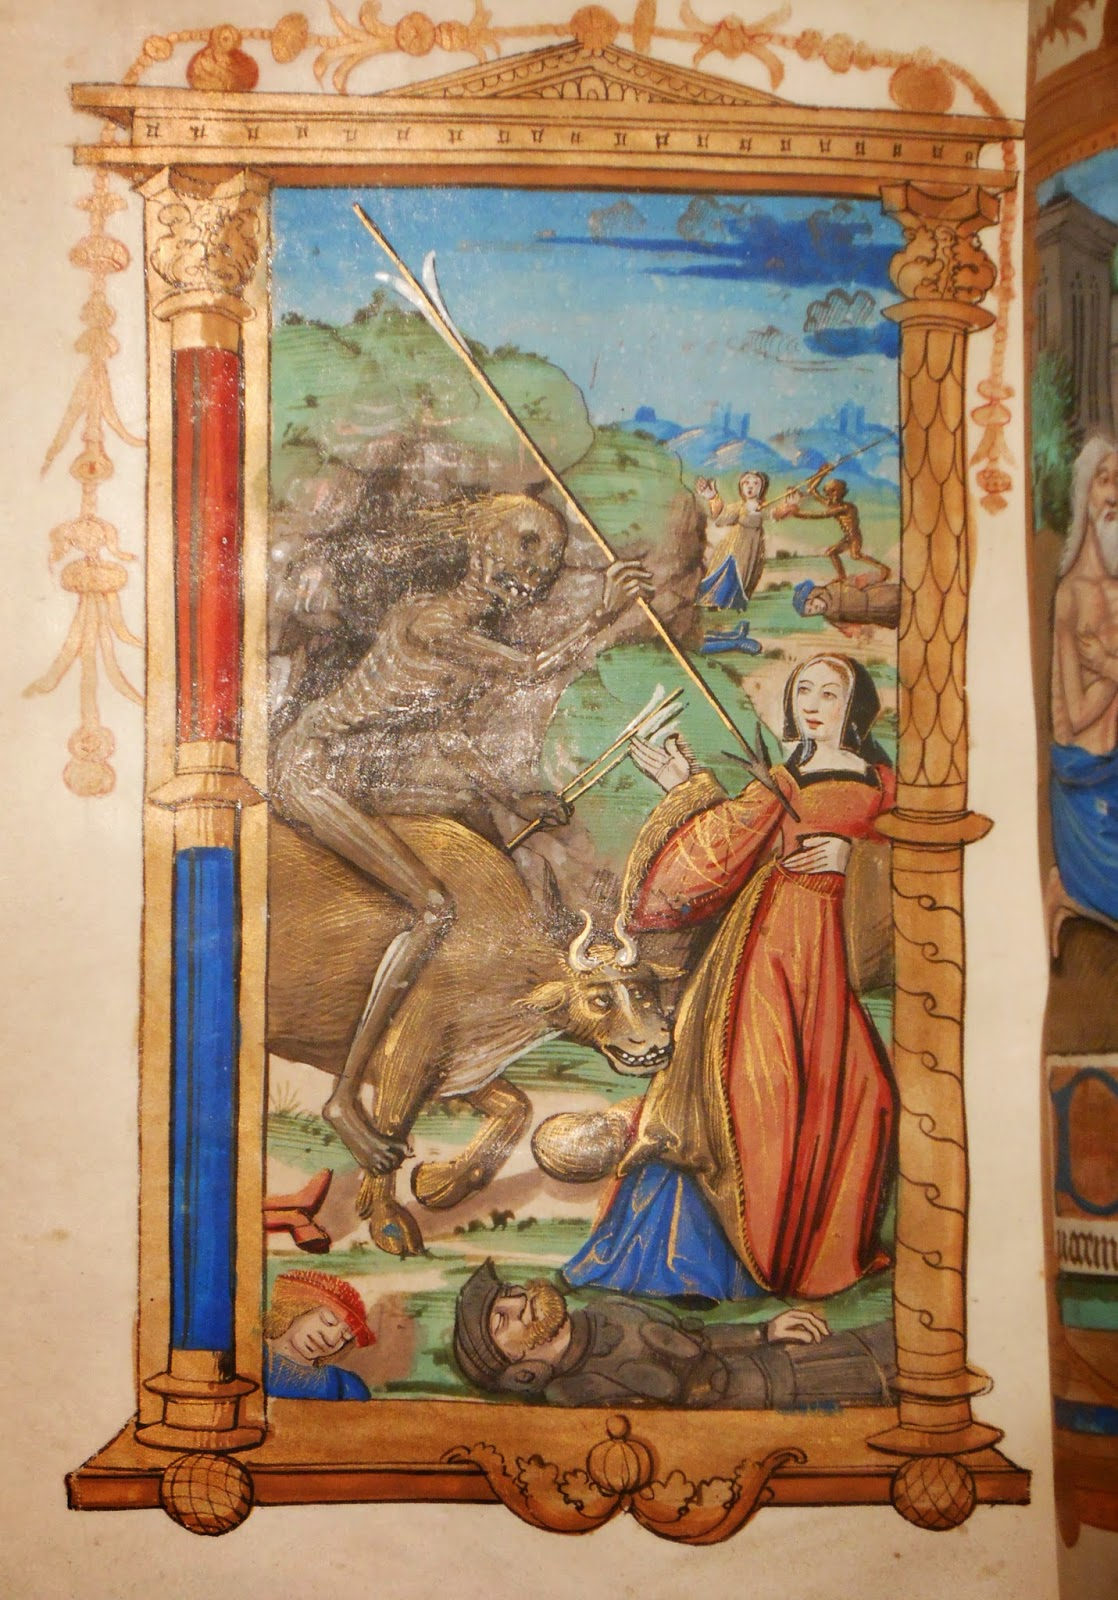 A painting from a book of hours, showing a skeleton riding a bull while hurling a giant arrow at a woman.